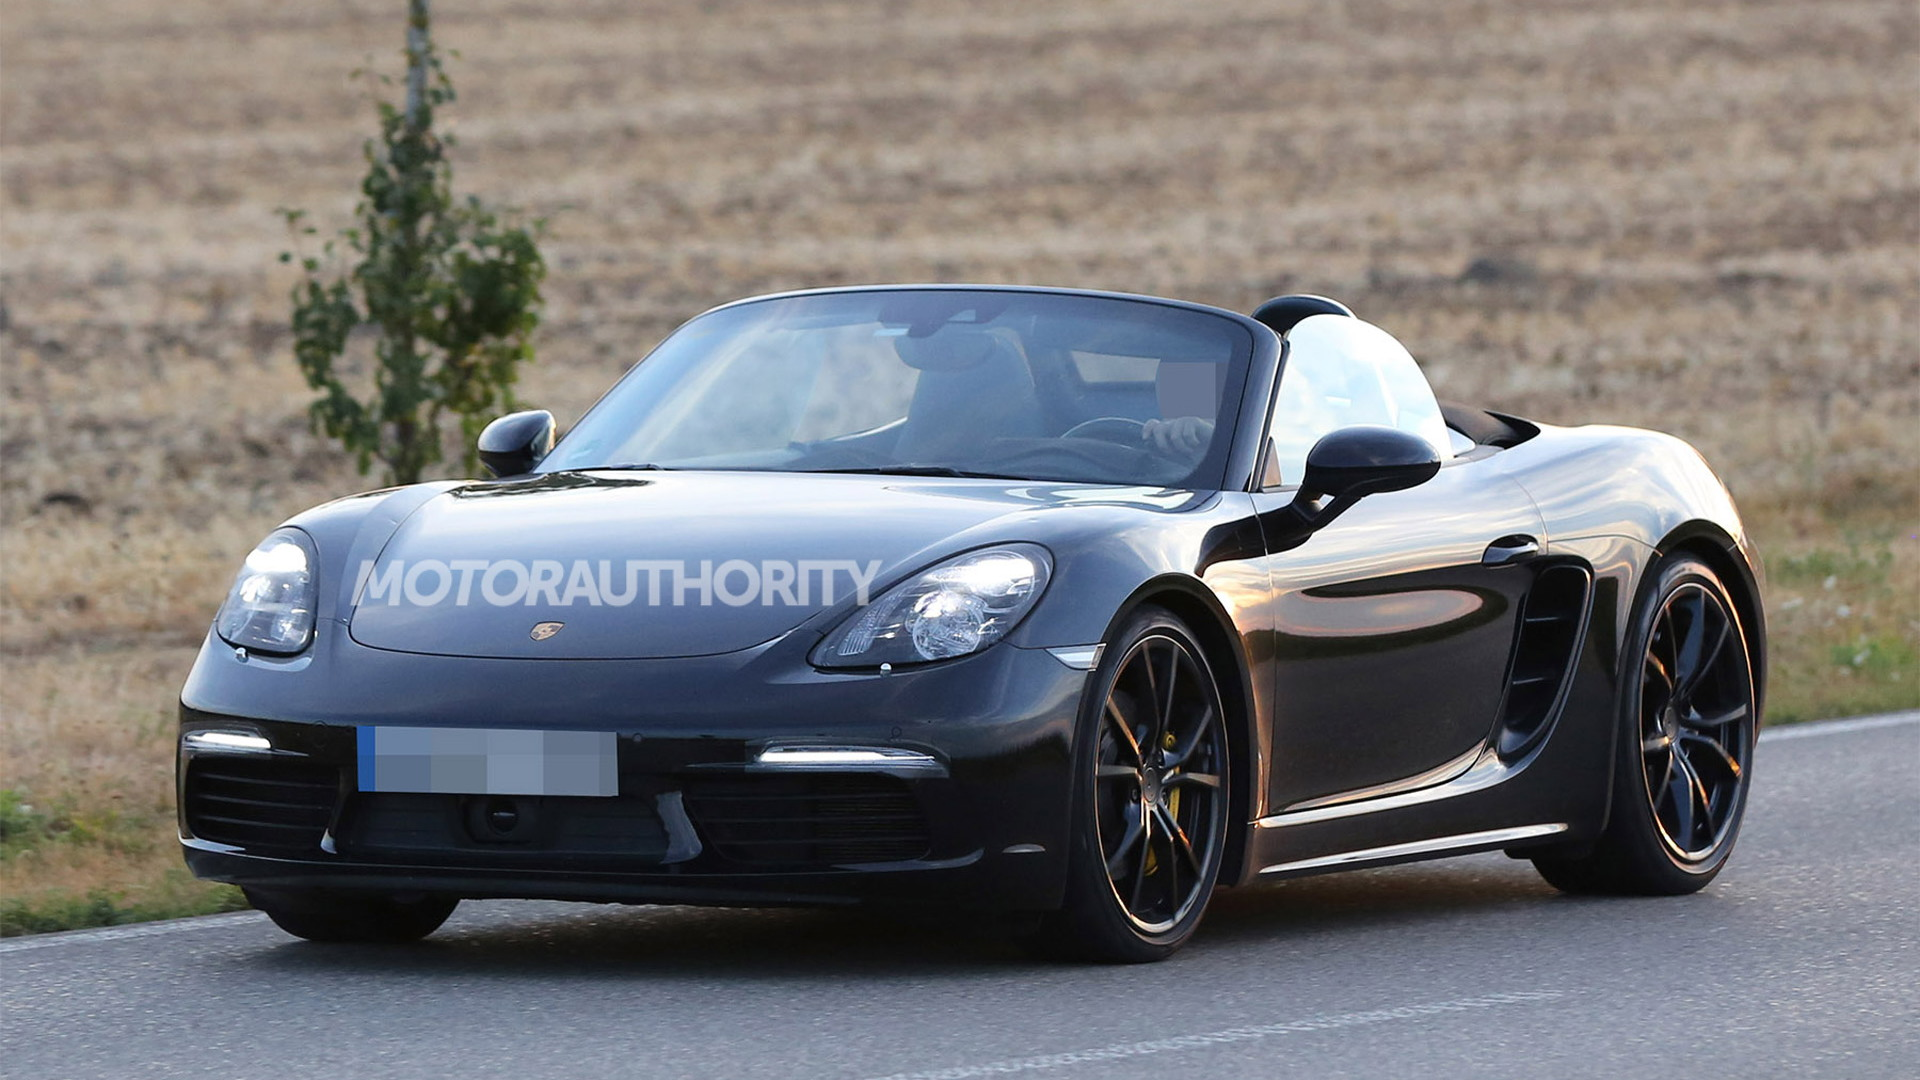 2017 Porsche Boxster Spy Shots And Video